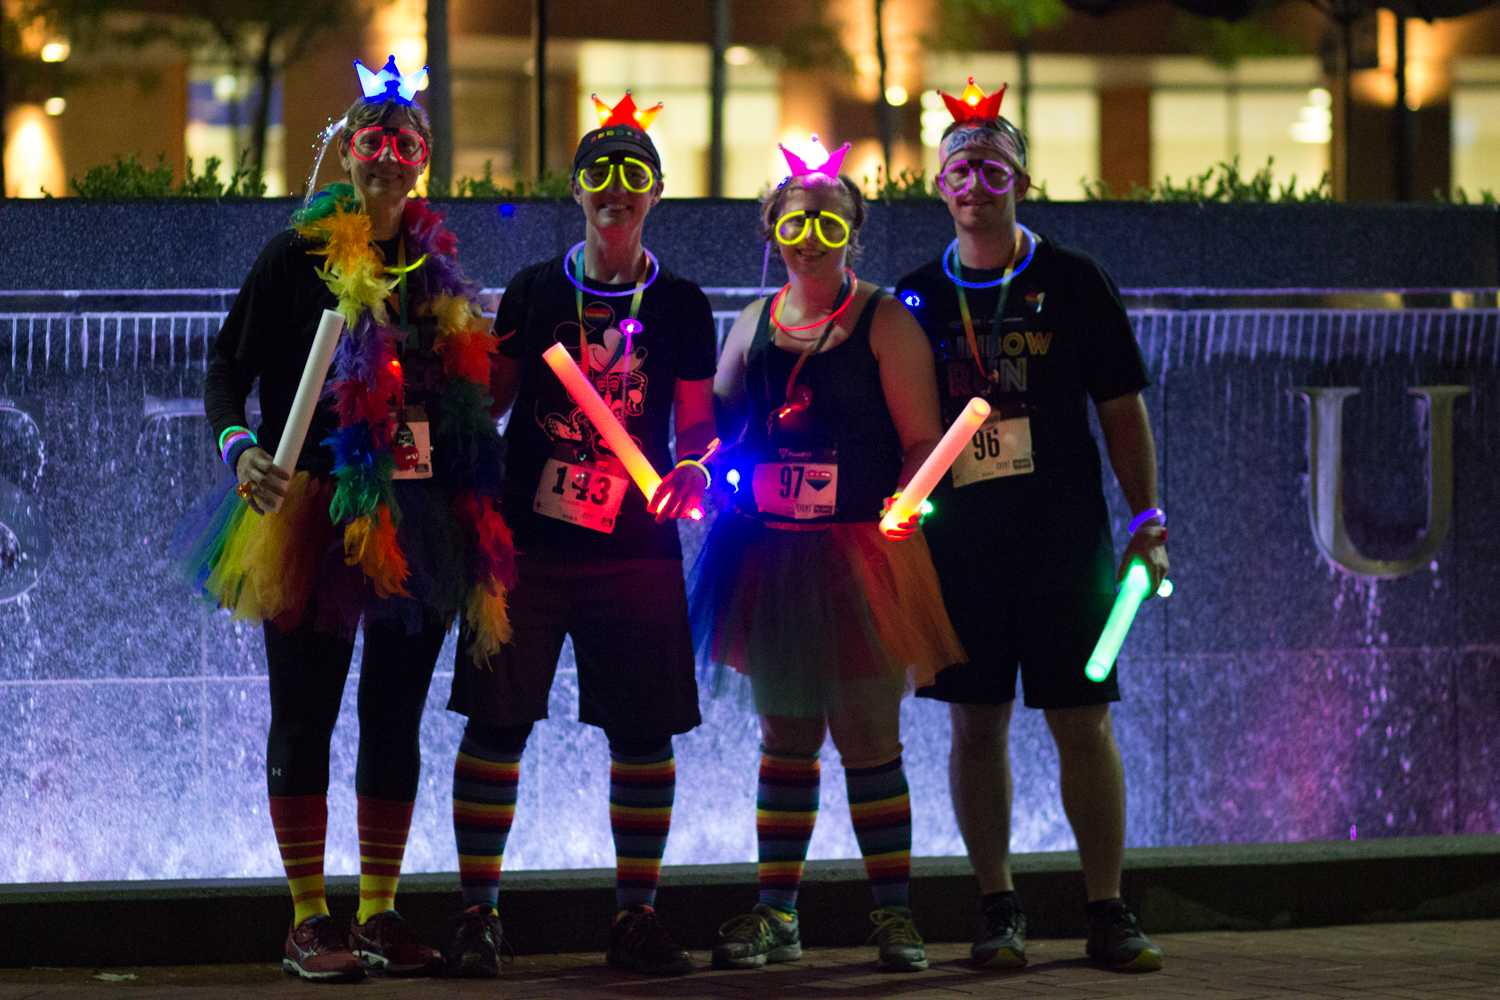 (Left to Right) Kathy Wilson, Tiffany Holler, Nicole Yoder and Andrew Yoder pose for a photo at the Rainbow Run 5k event outside the Kent State Student Center on Friday, Sept. 21, 2018. Photo by Sophia Adornetto.